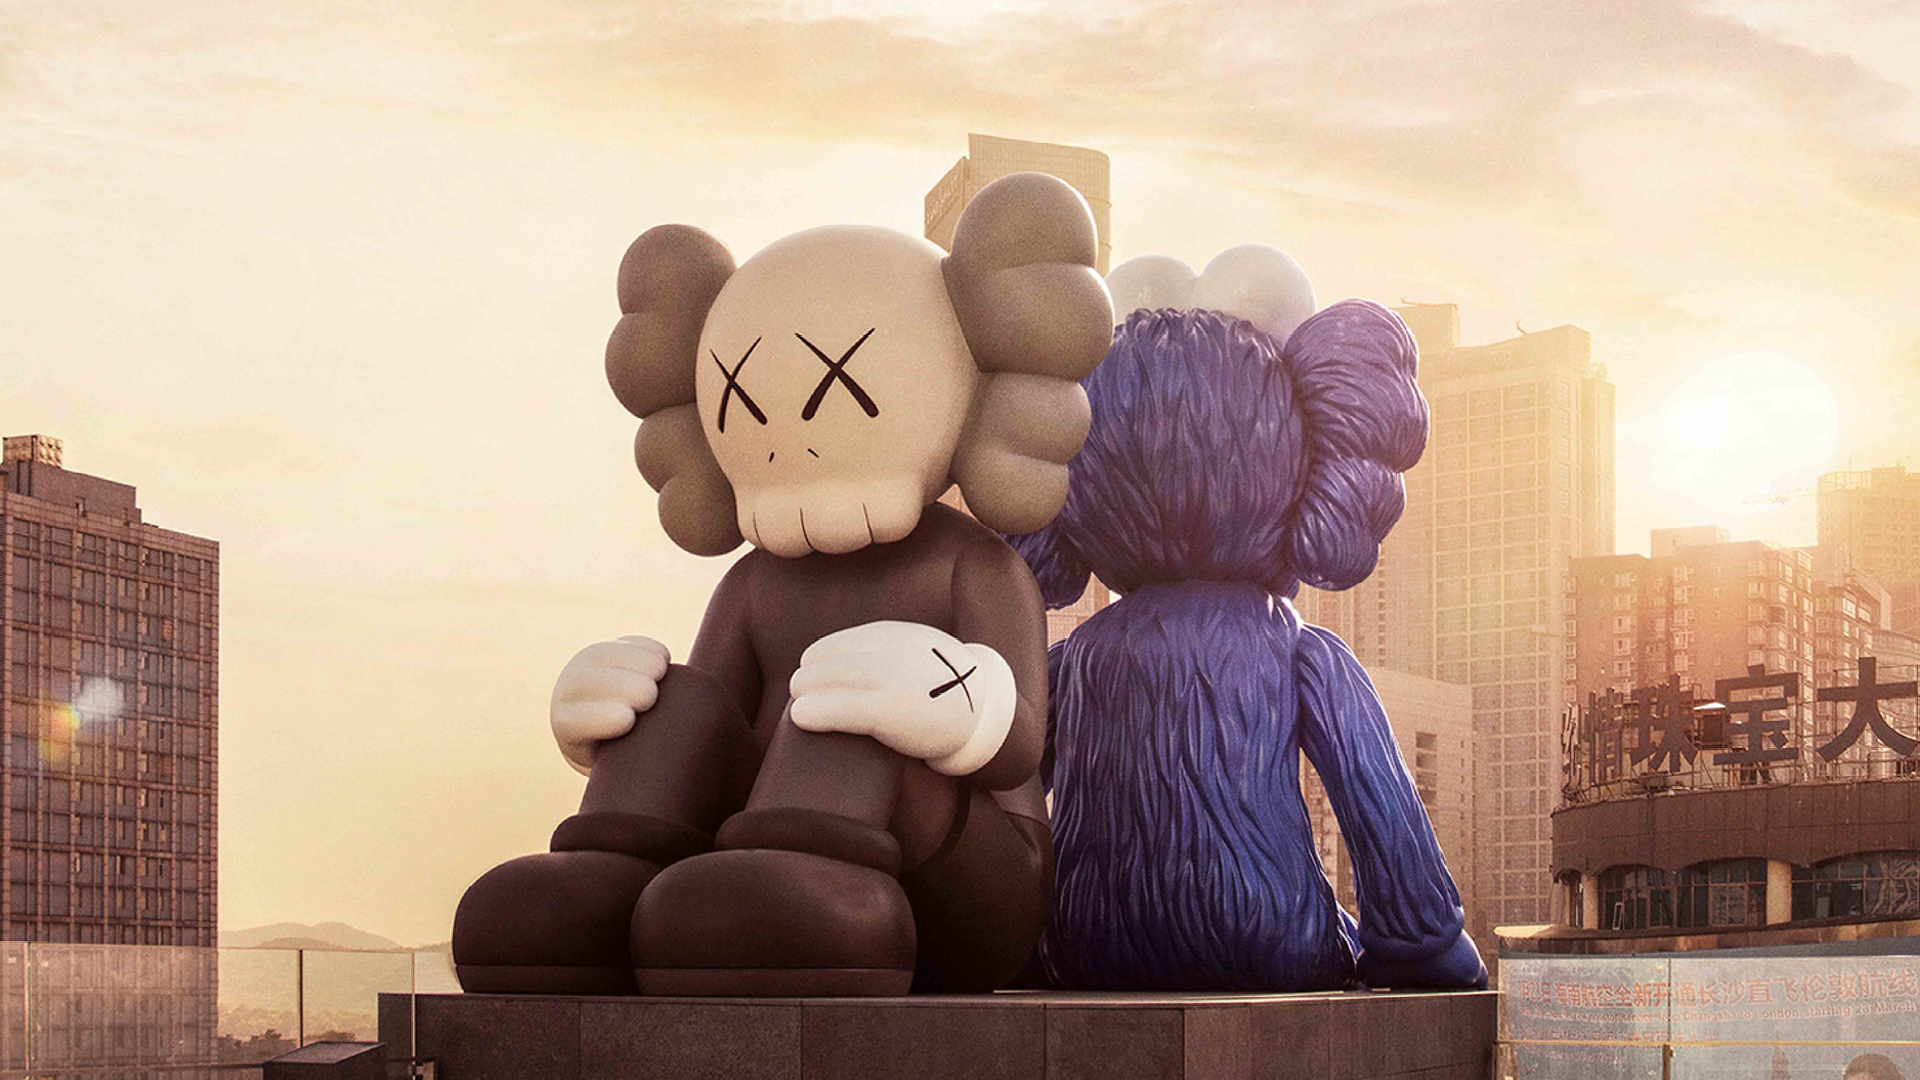 KAWS Seeing/Watching| KAWS| Chiang Kai-shek Memorial Hall| STIR